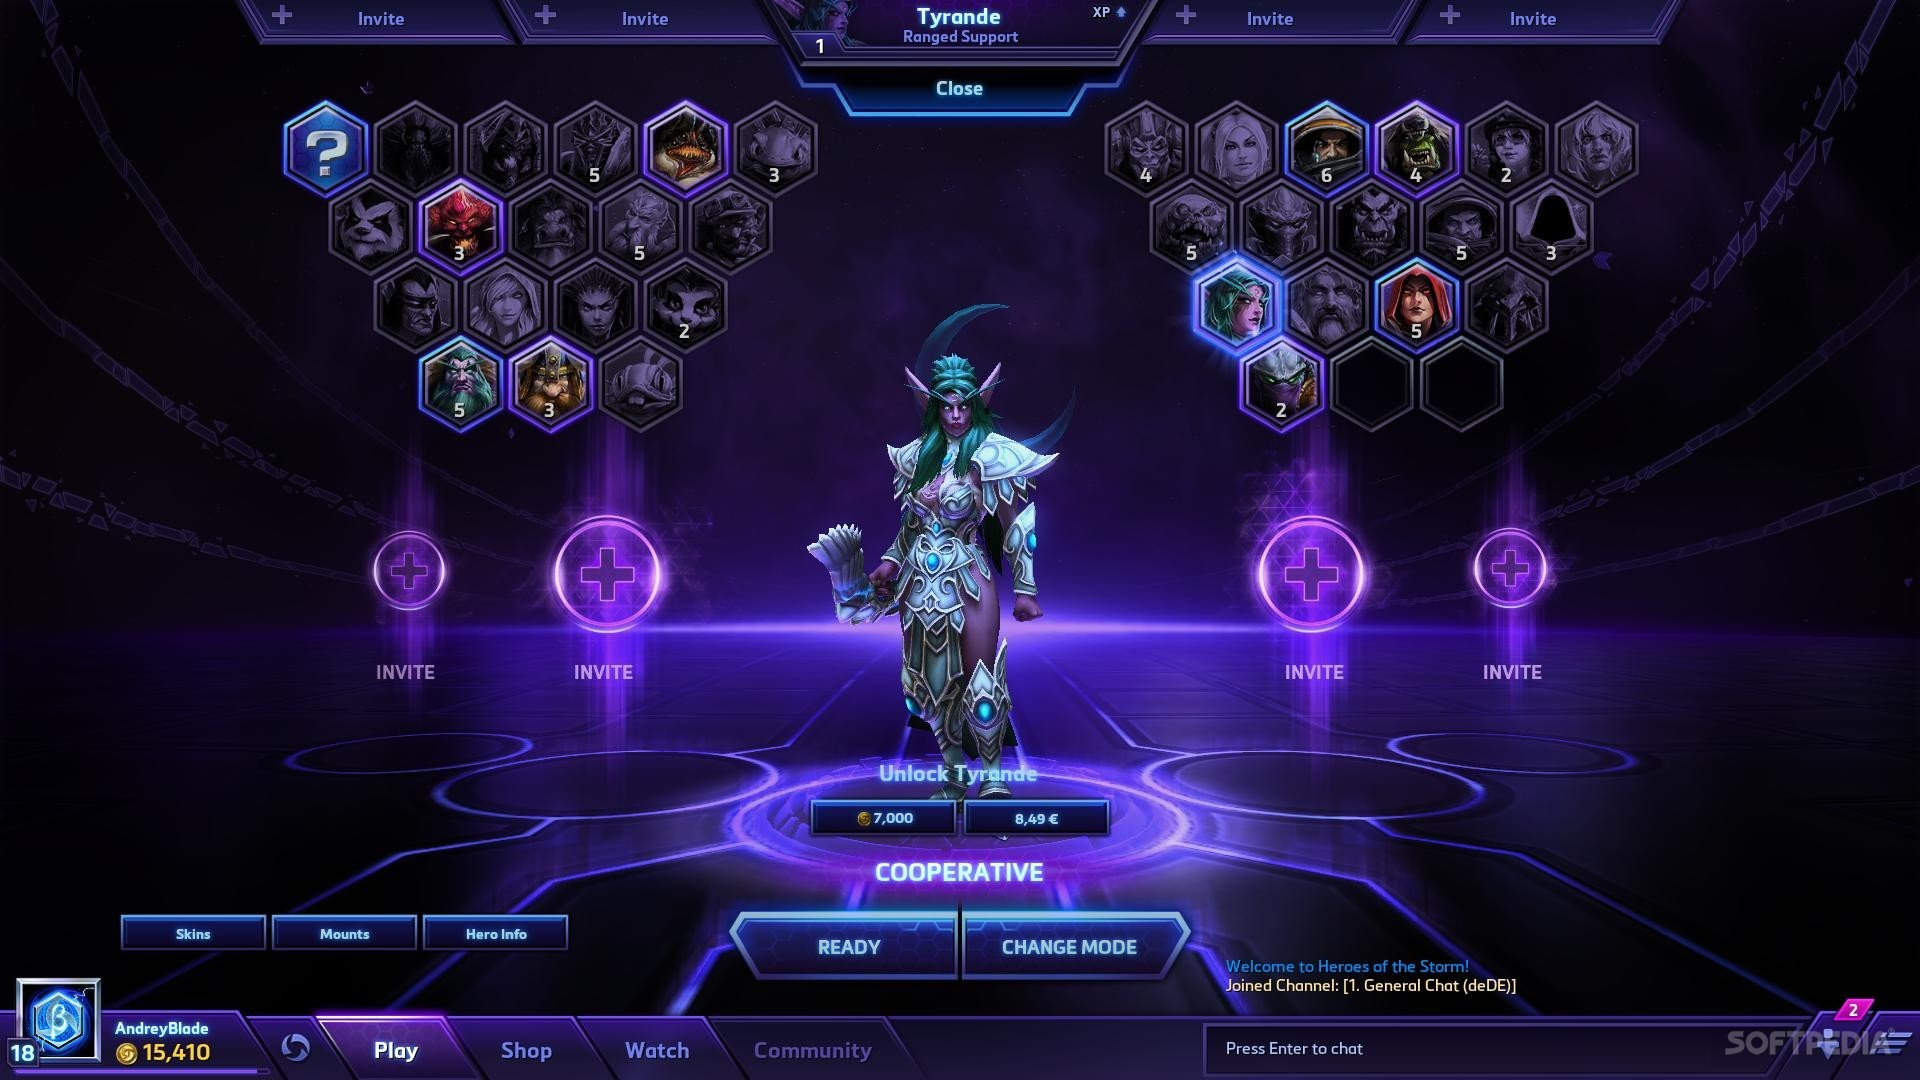 Heroes of the storm ll JUEGA EDD00 Heroes-of-the-Storm-Gets-New-Free-Hero-Rotation-with-Zeratul-Sale-on-Kerrigan-471991-3